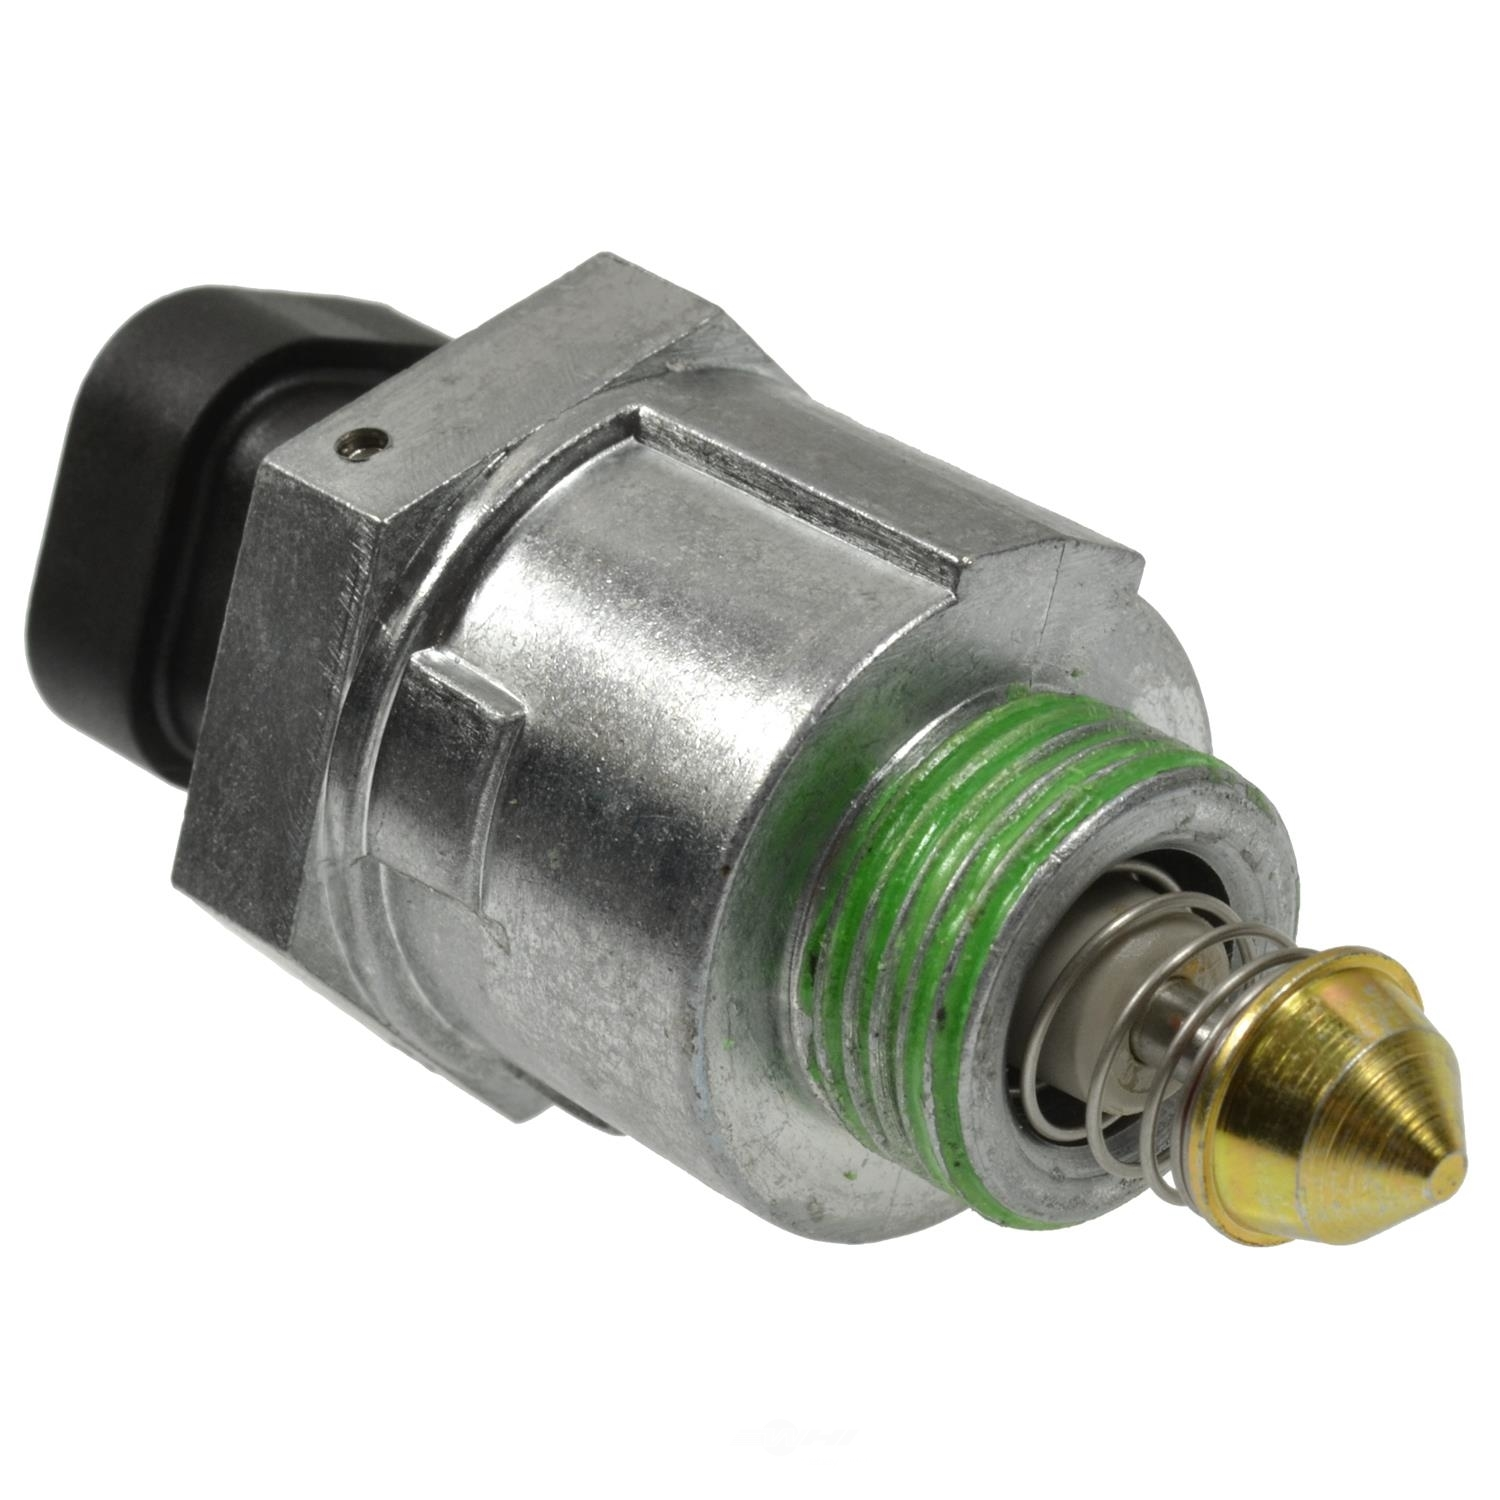 STANDARD T-SERIES - Fuel Injection Idle Air Control Valve - STT AC1T